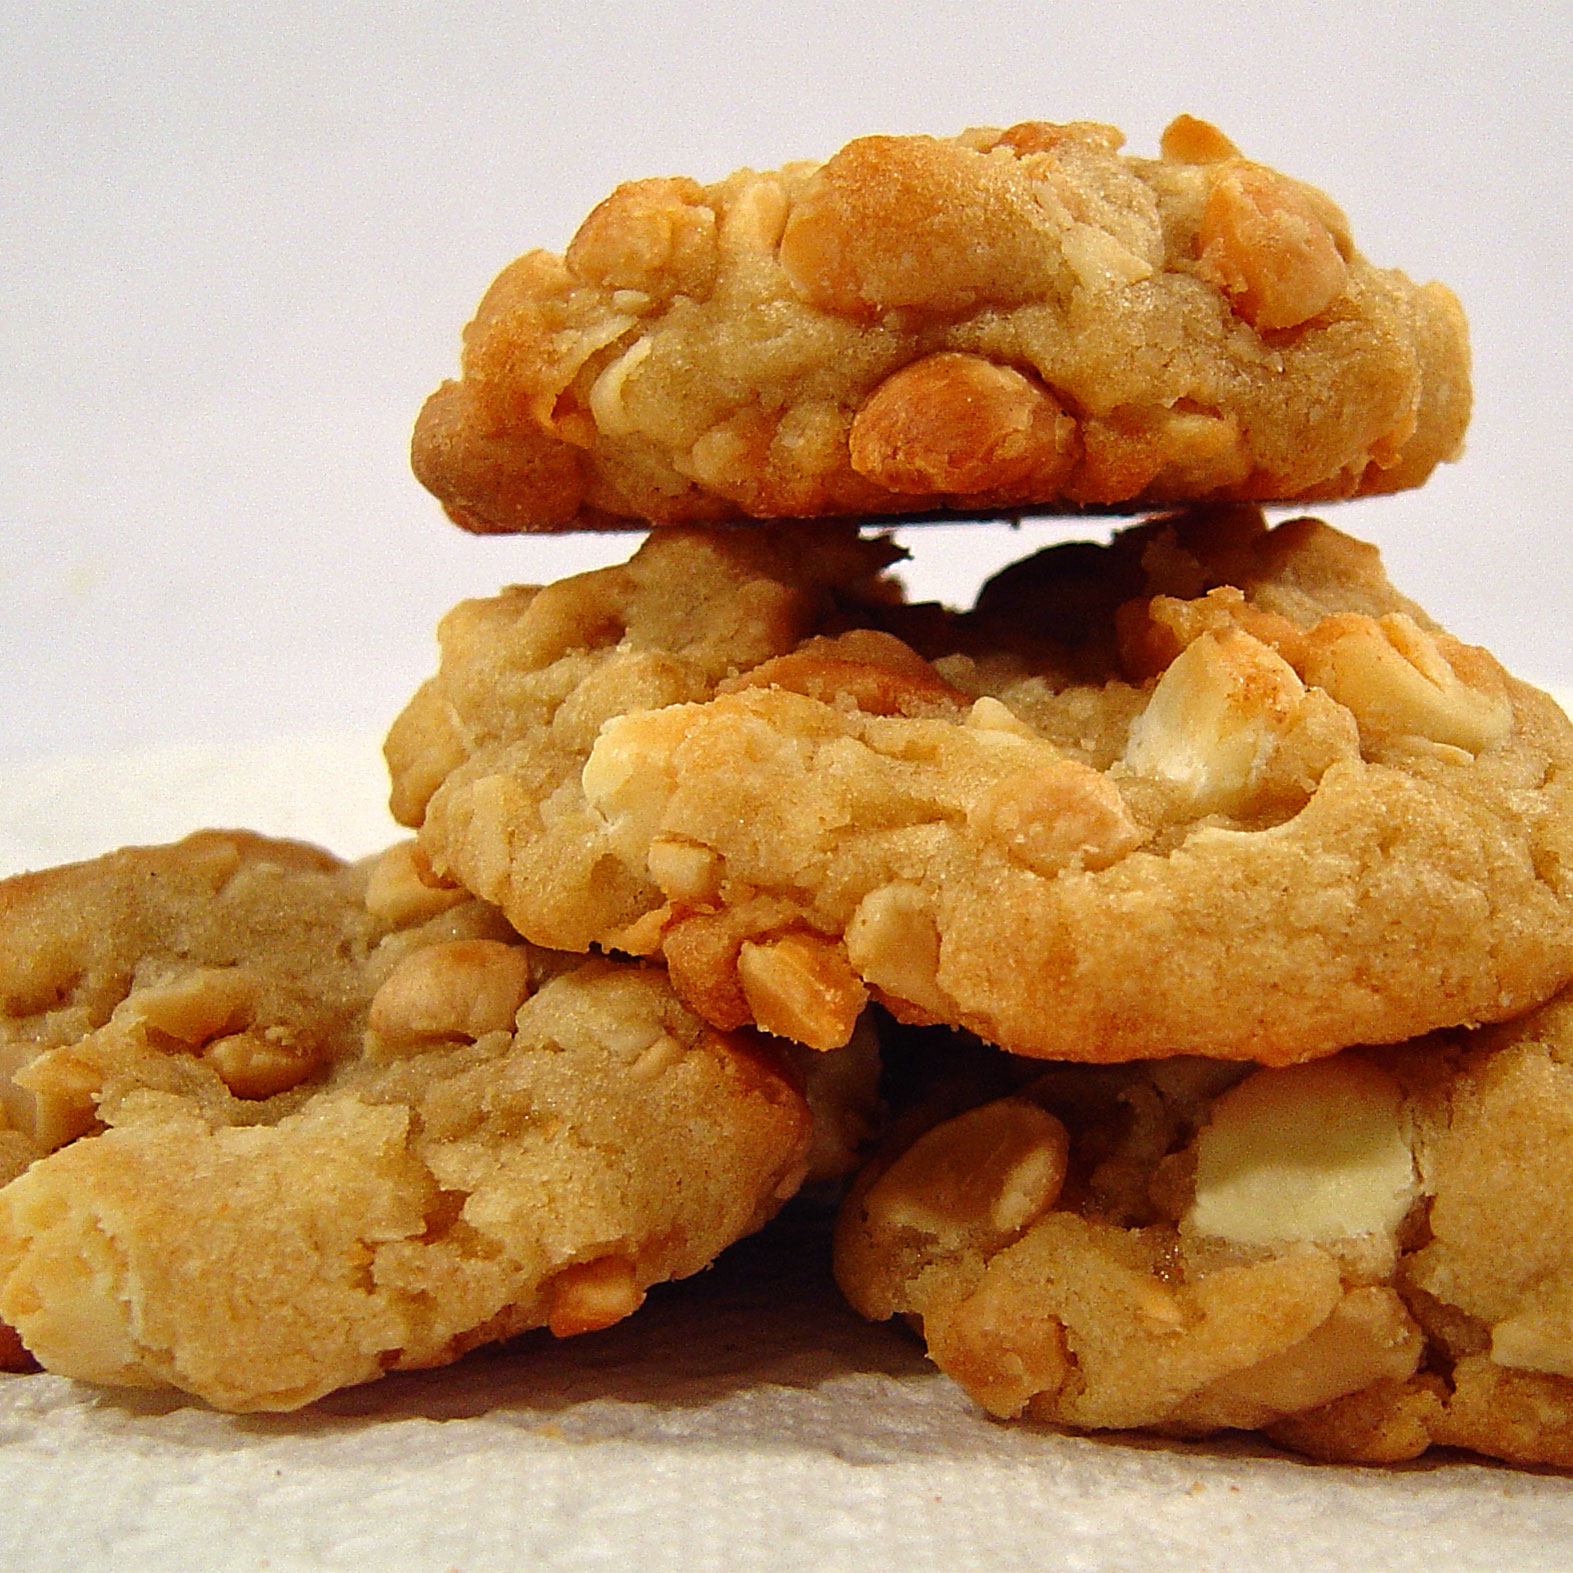 ... Course Desserts Cookies and Bars White Chocolate Macadamia Cookies